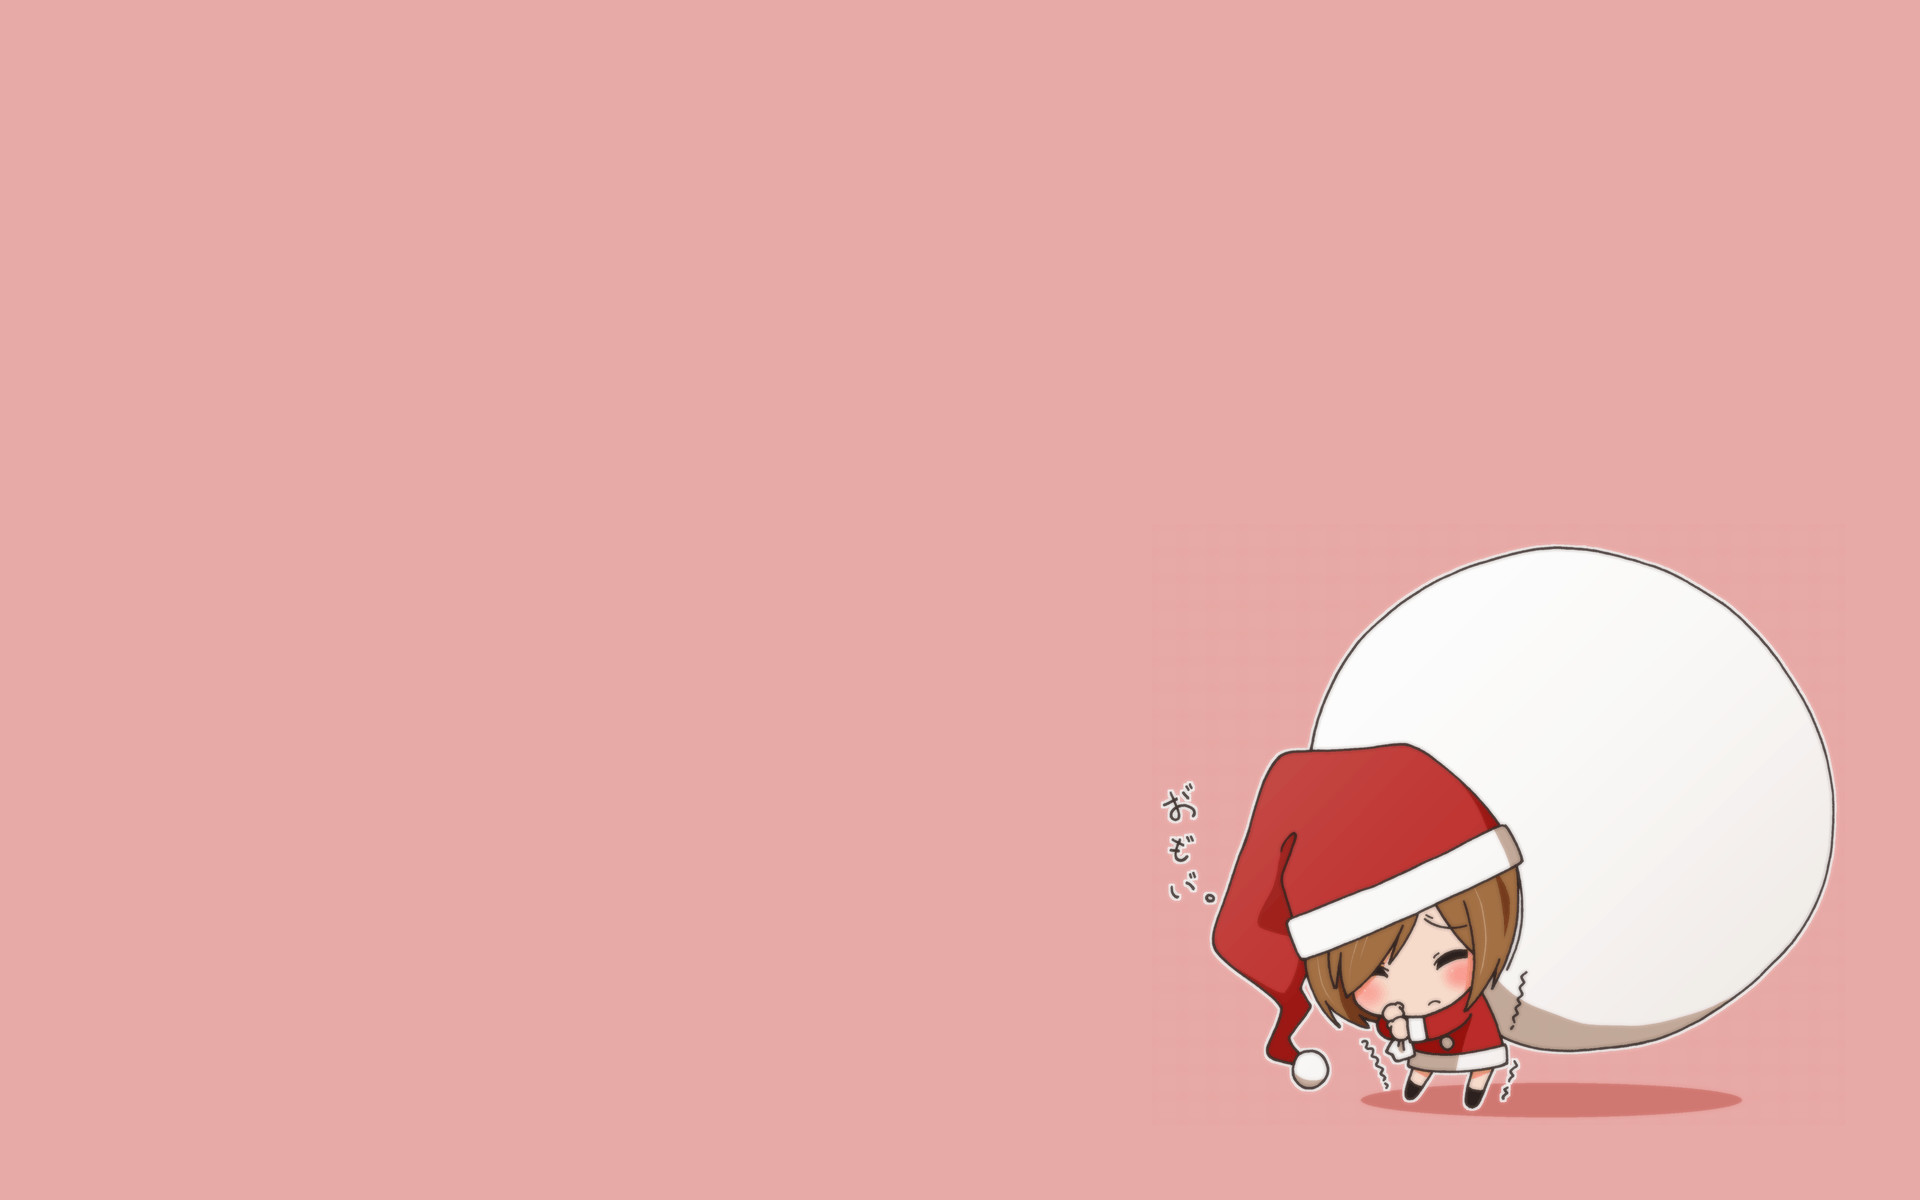 Res: 1920x1200, Chibi Wallpapers 67 Wallpapers HD Wallpapers